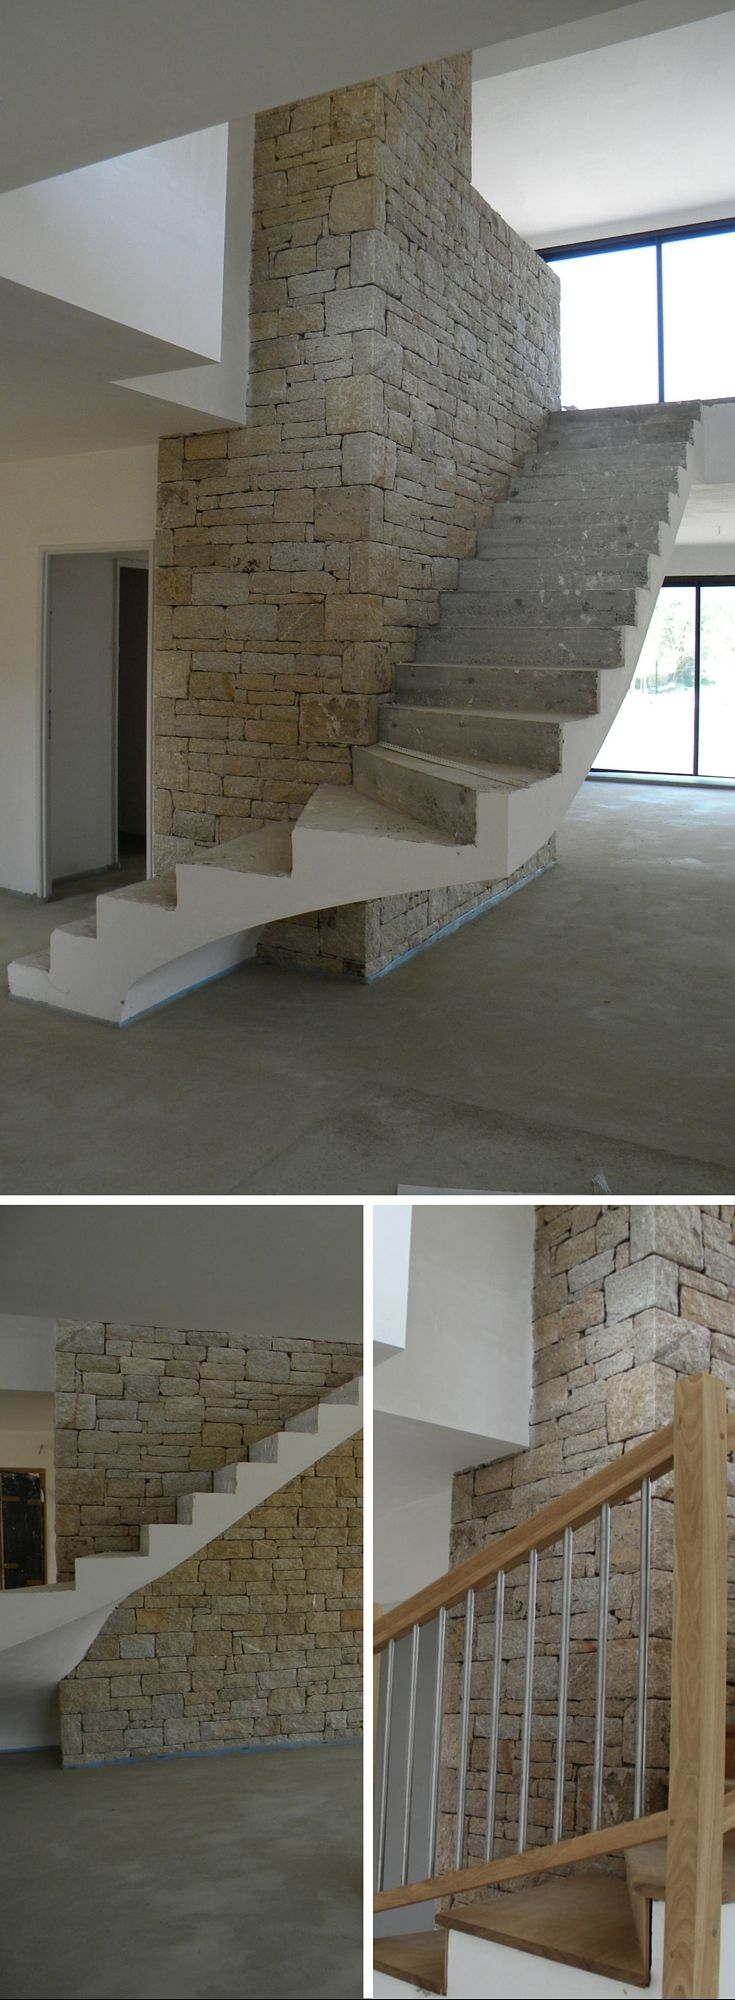 Best interior stone walls ideas on pinterest - Joint pour mur en pierre interieur ...